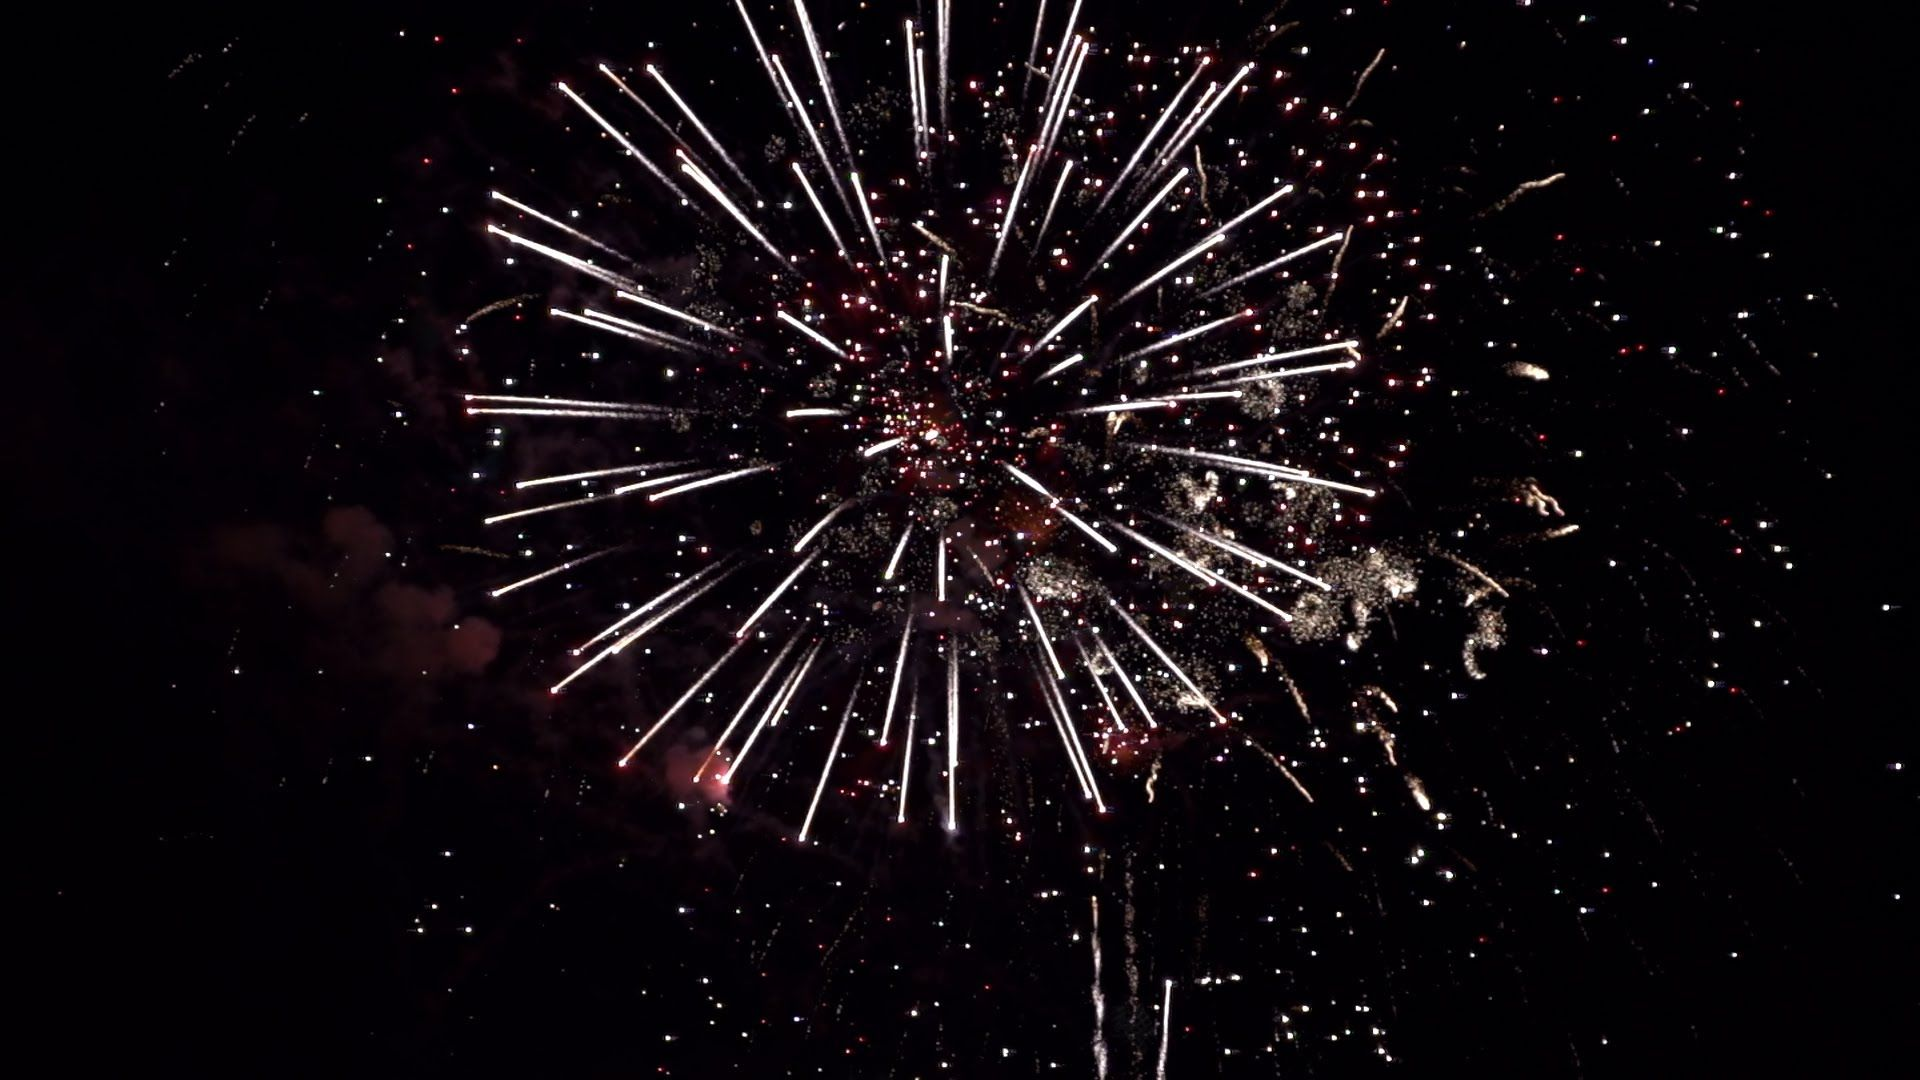 Beachfront B Roll Fireworks Slow Motion Free To Use Hd Stock Video Footage Free Stock Video Fireworks Photo Fireworks